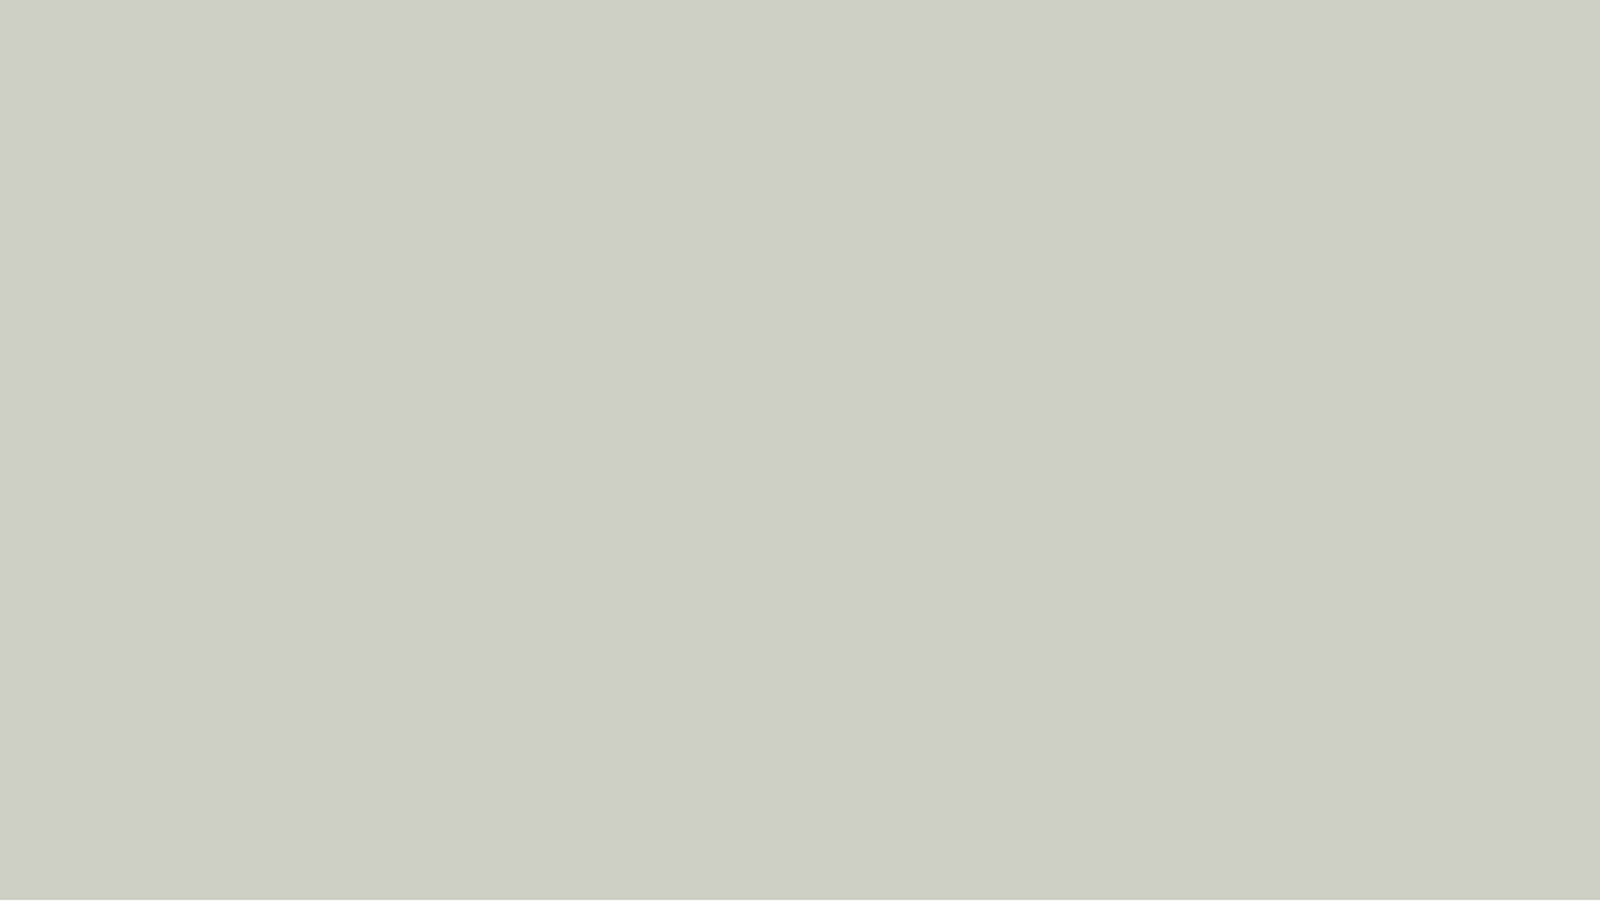 1600x900 pastel gray solid color background